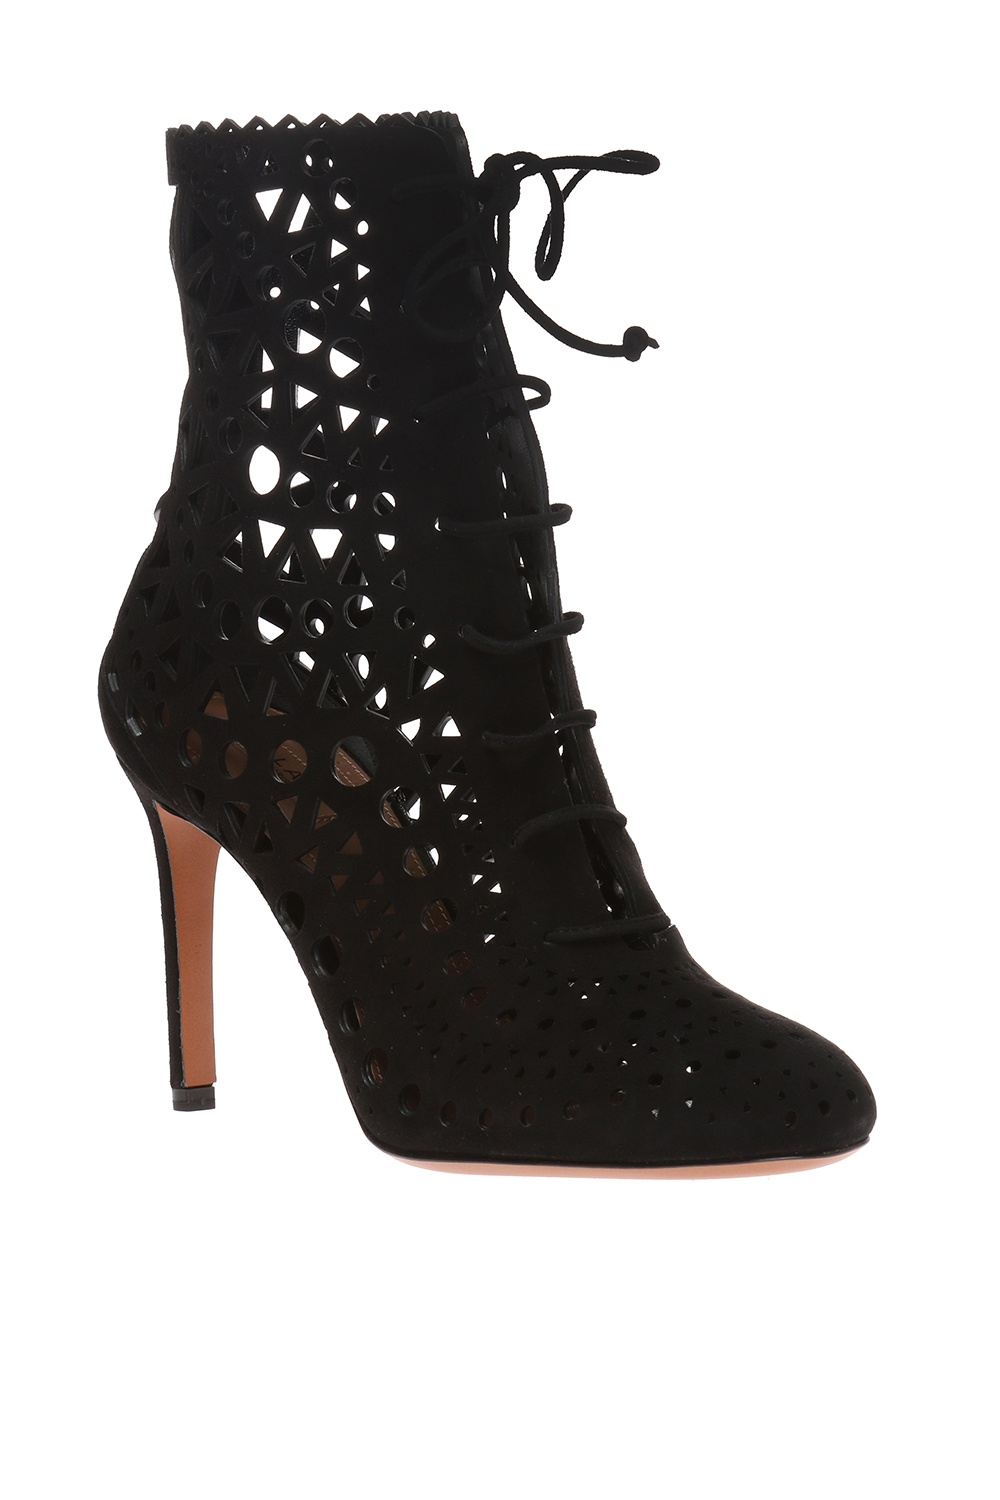 Alaia Heeled boots with an openwork pattern